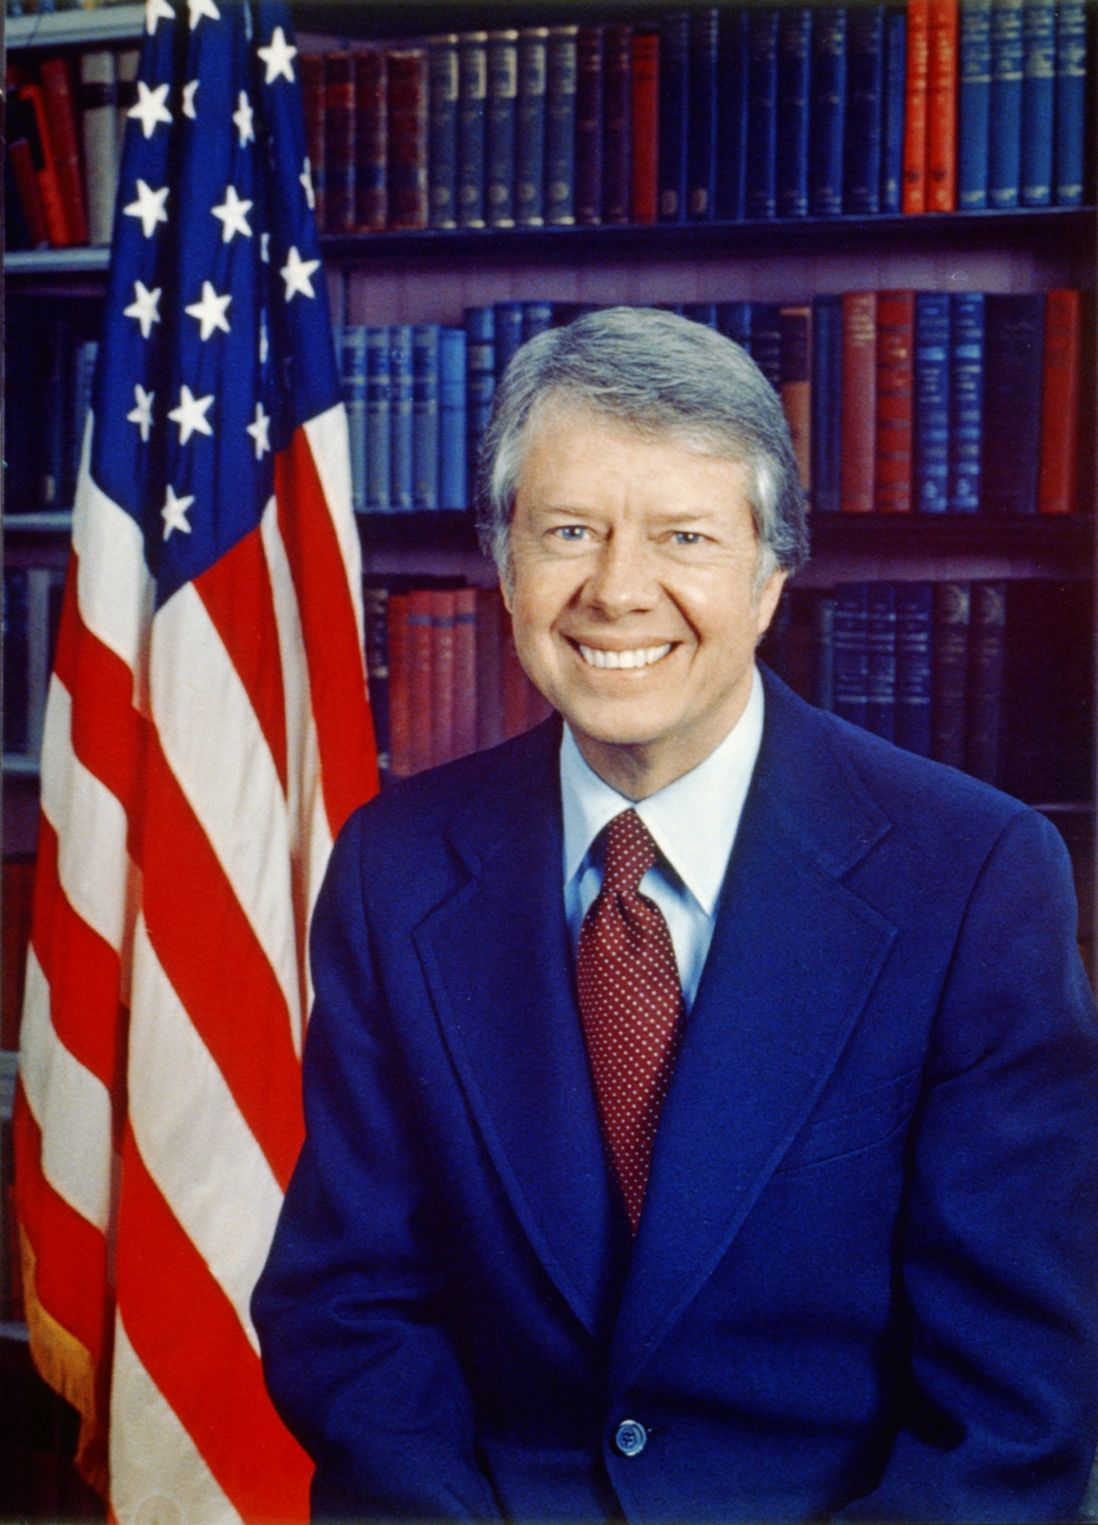 President Jimmy Carter White House Portrait. Photo by Official White House Photograph/Wikimedia Commons